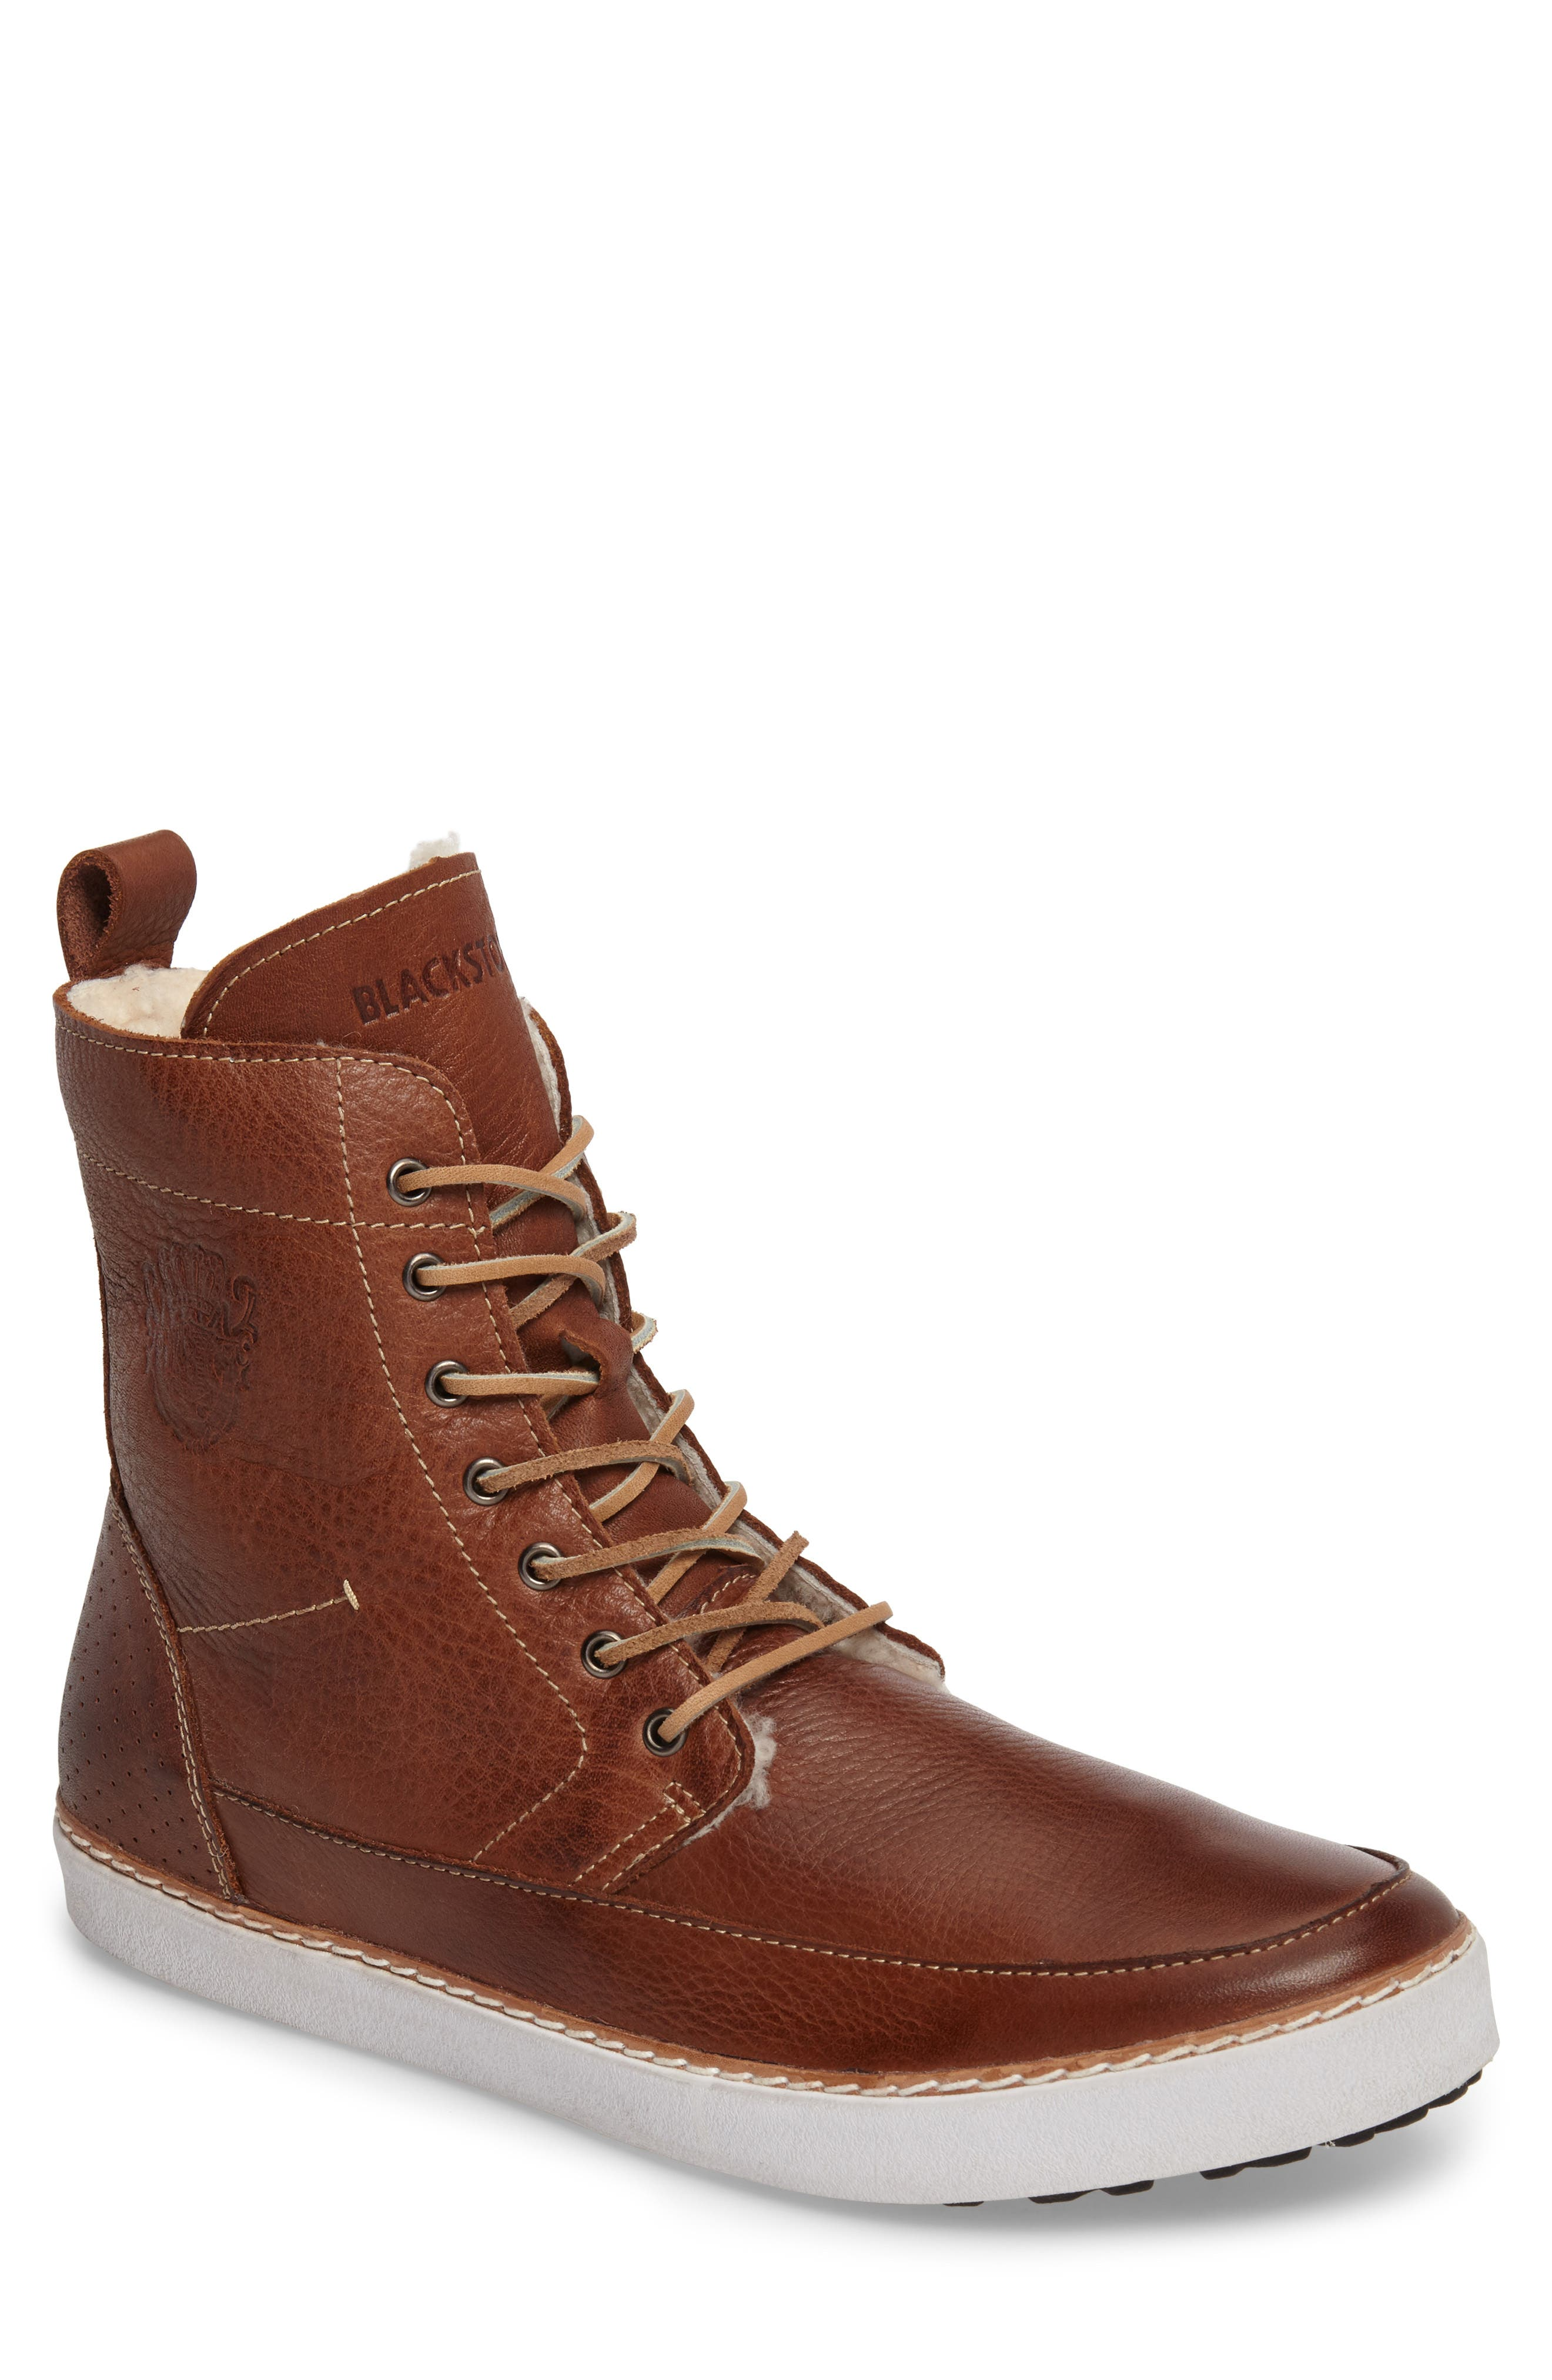 Blackstone 'AM 32' Shearling Lined Boot (Men)